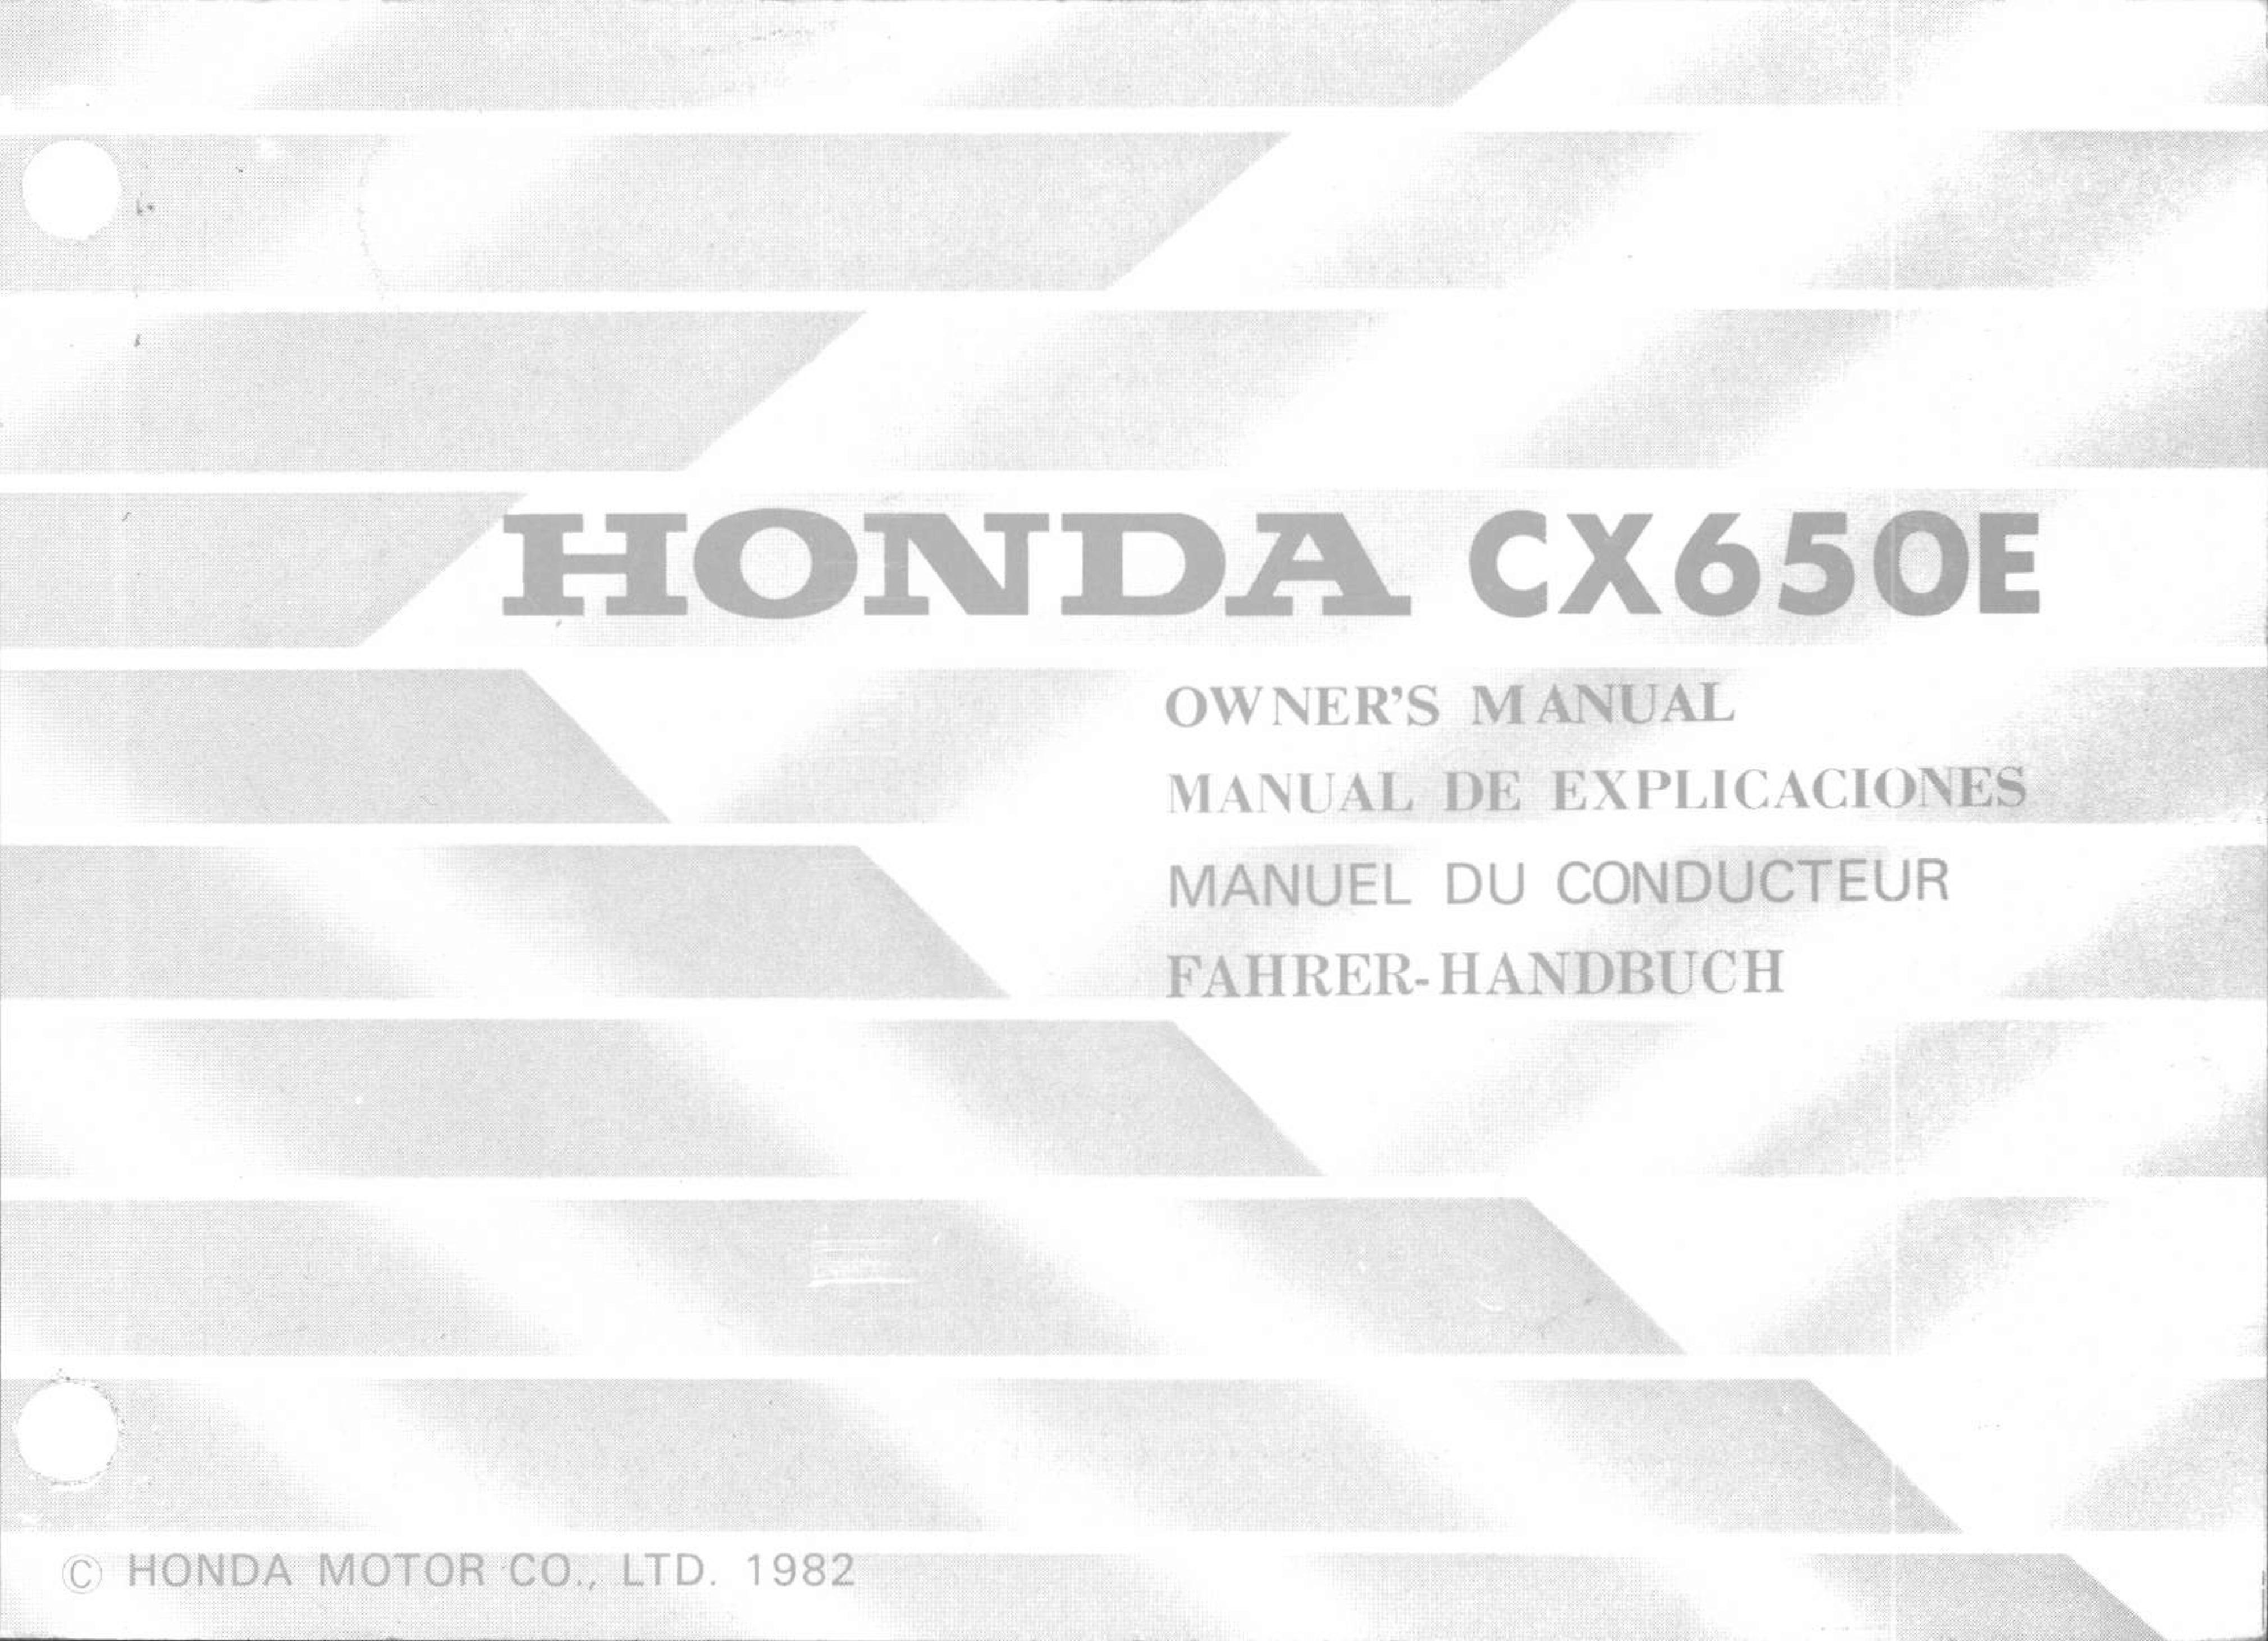 Honda Owners Manual >> And More Honda Owner S Manuals Have Arrived